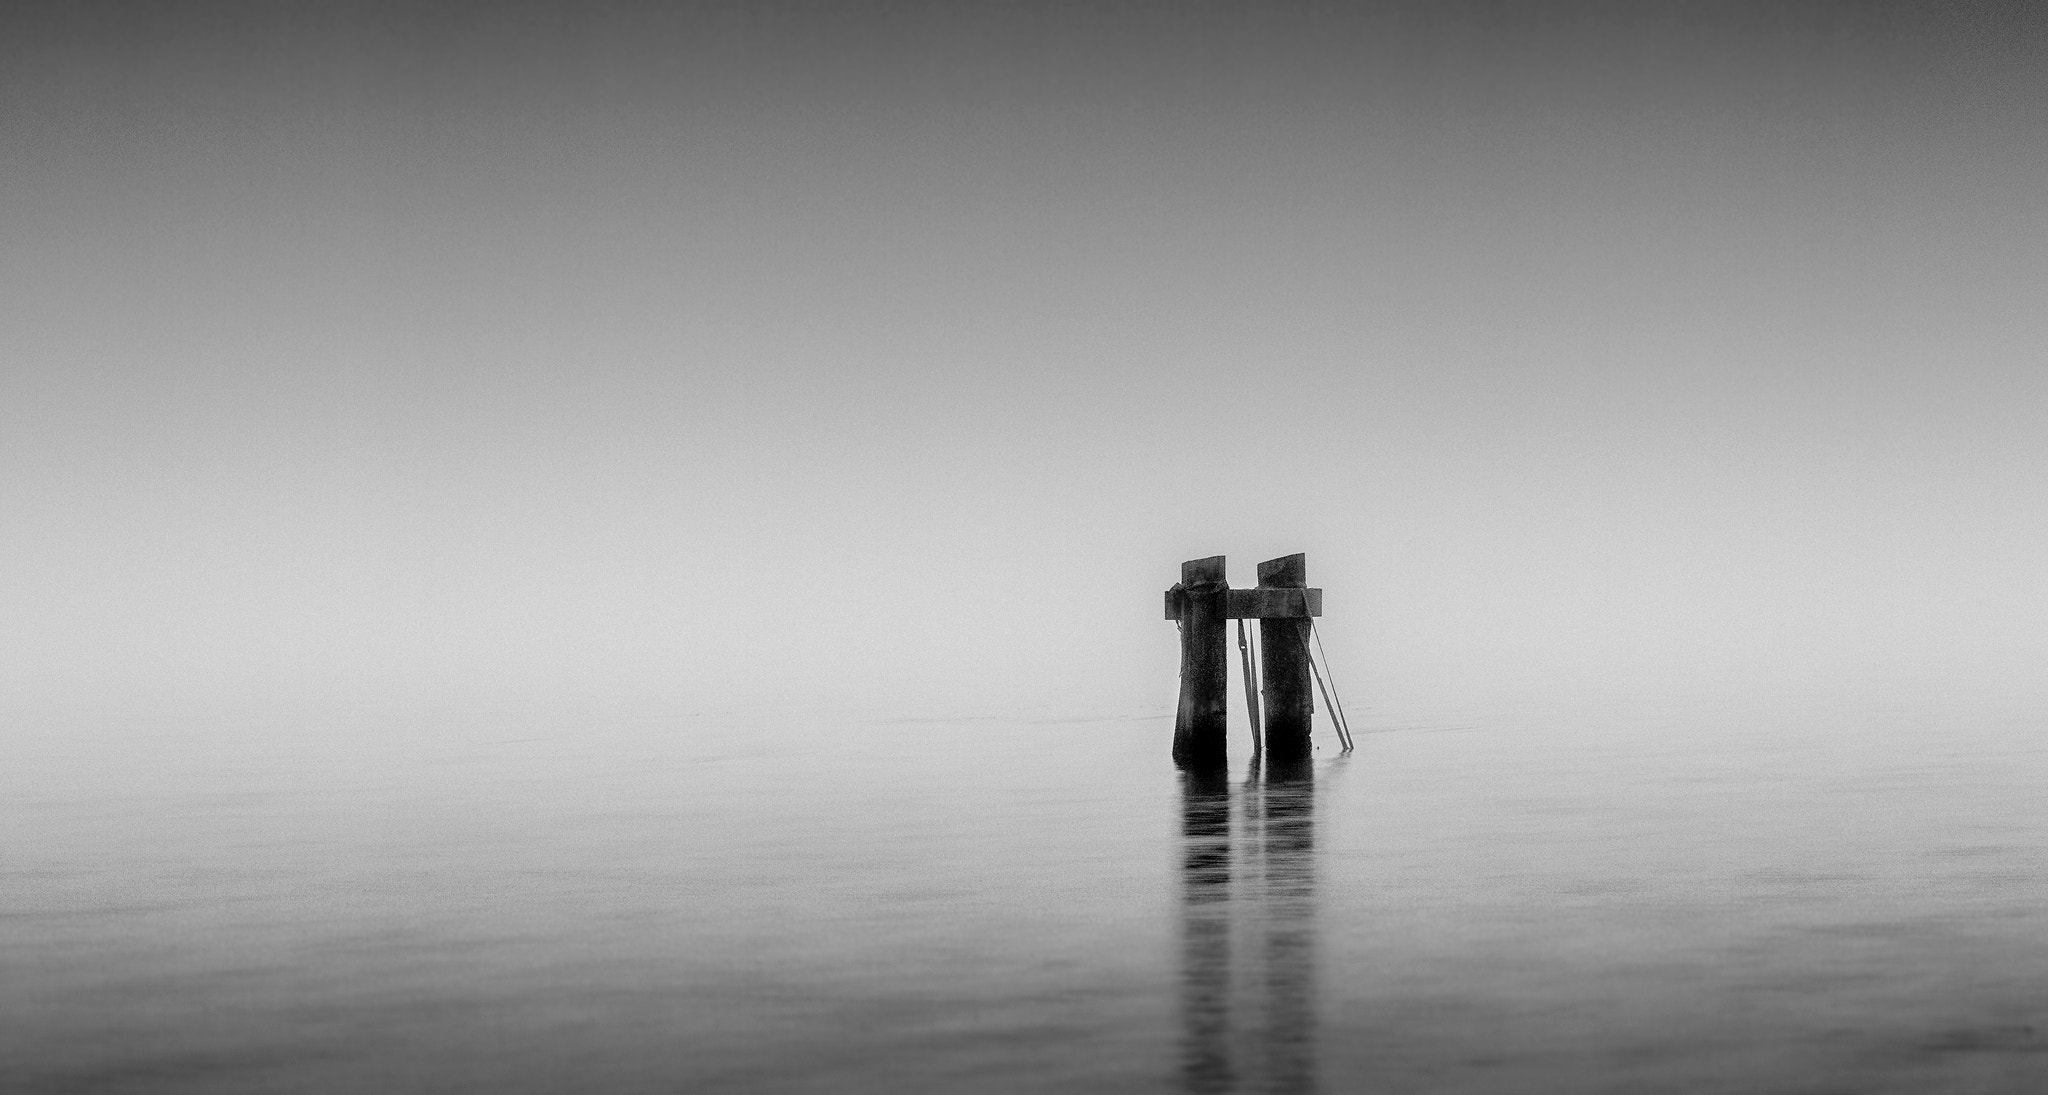 Photograph The Poles In The Fog by Jani Astikainen on 500px